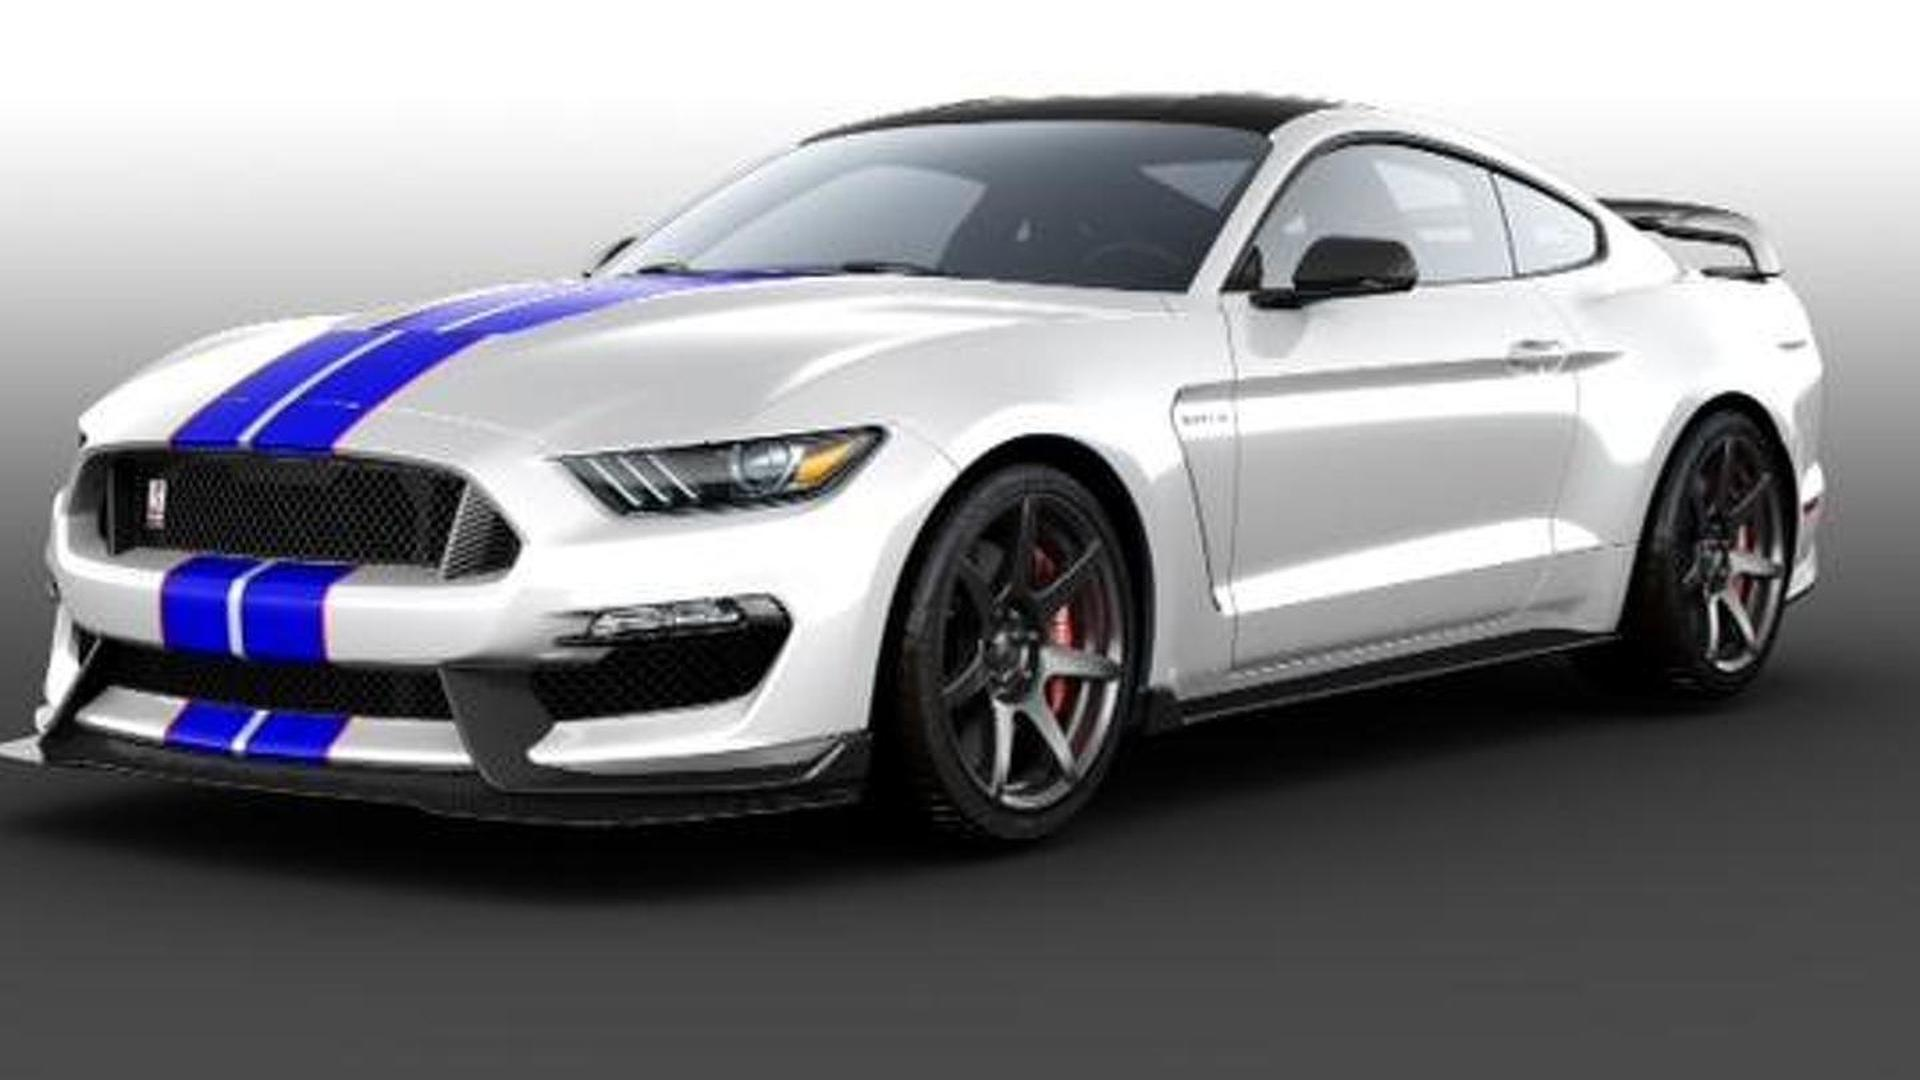 Ford to auction off a unique 2016 Shelby GT350R Mustang